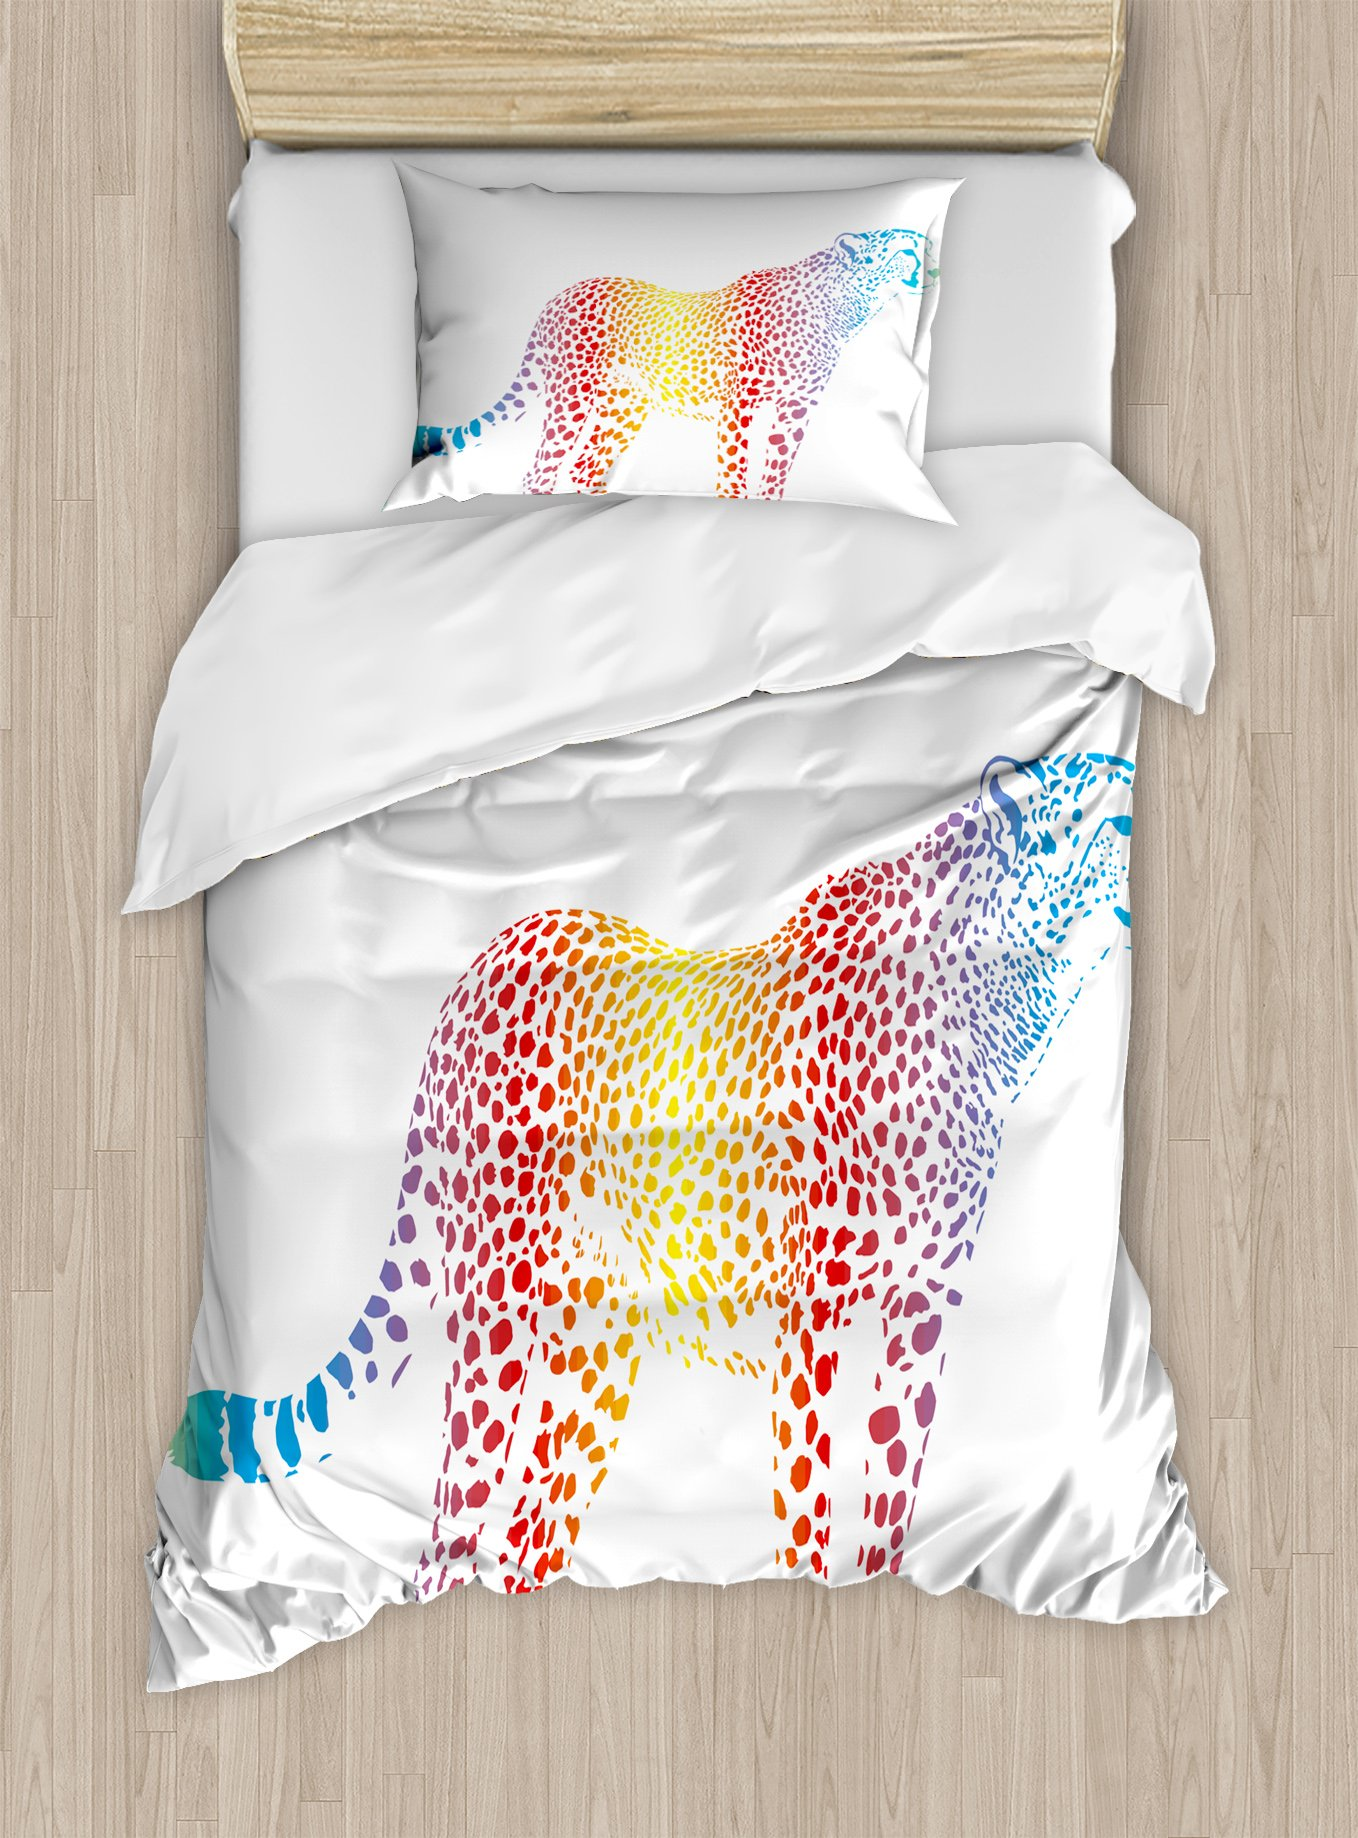 Ambesonne Rainbow Duvet Cover Set Twin Size, Cheetah Rainbow Colored Smokescreen Camouflage Realsitic Animal Safari Wildlife, Decorative 2 Piece Bedding Set with 1 Pillow Sham, Multicolor